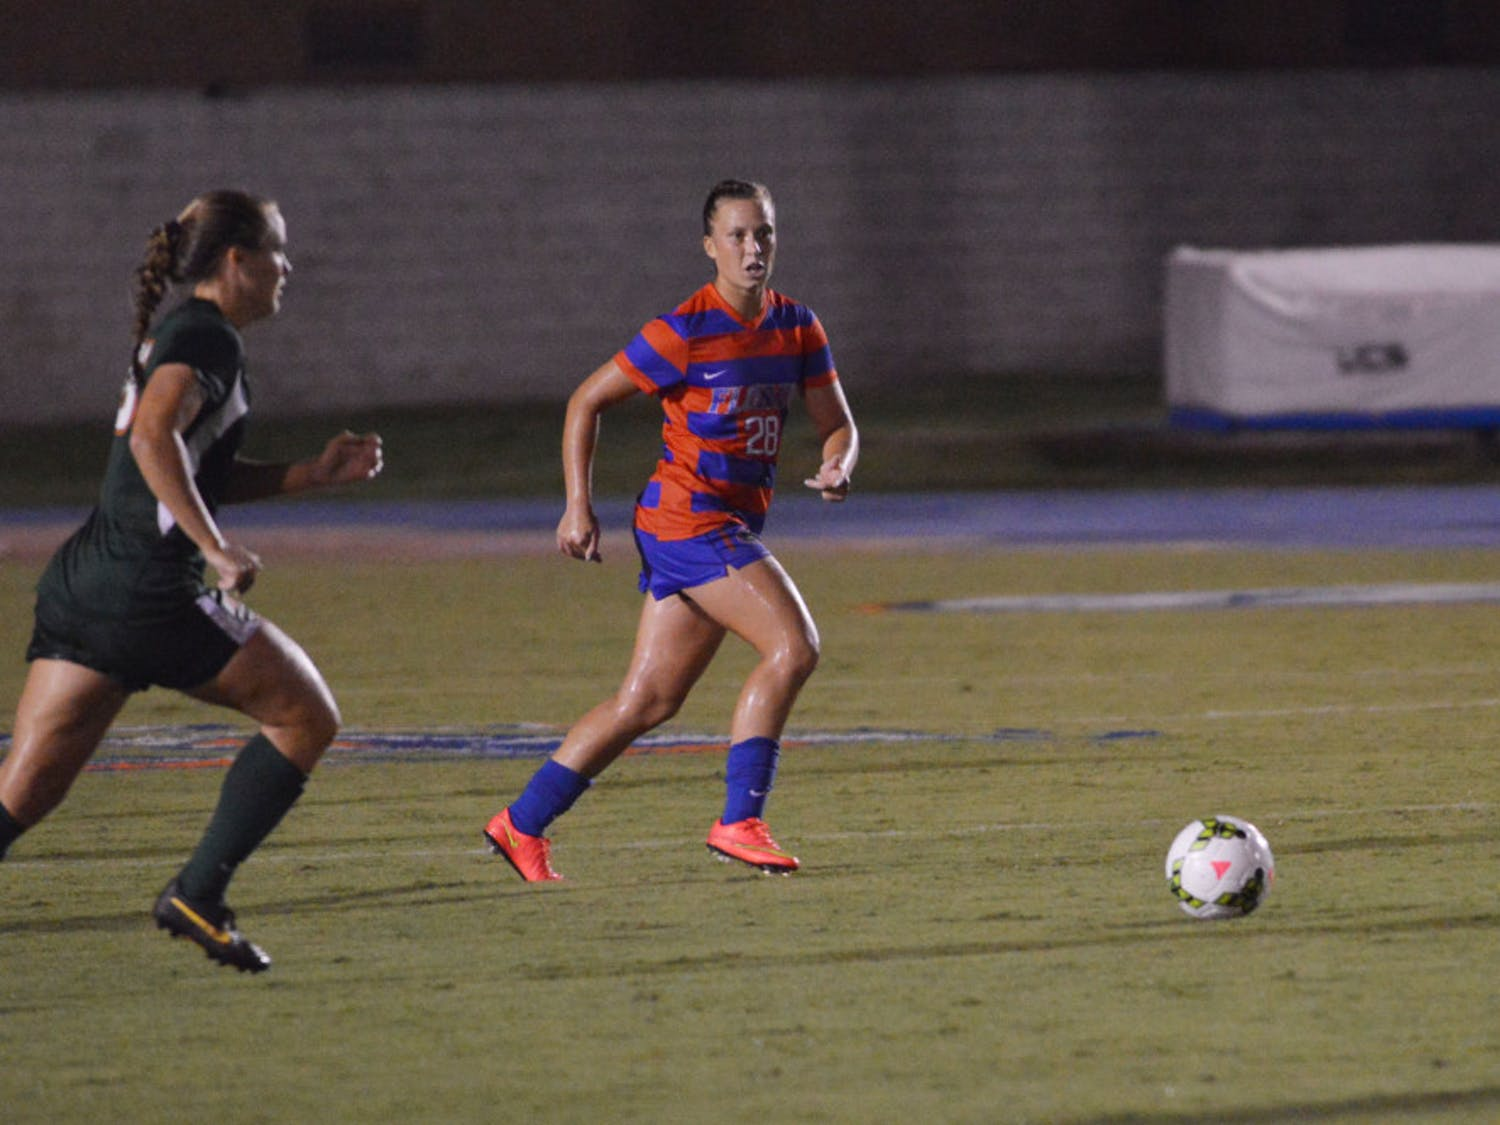 Sophomore midfielder Meggie Dougherty Howard runs toward the ball during Florida's 3-0 win against Miami on August 22, 2014, at James G. Pressly Stadium.